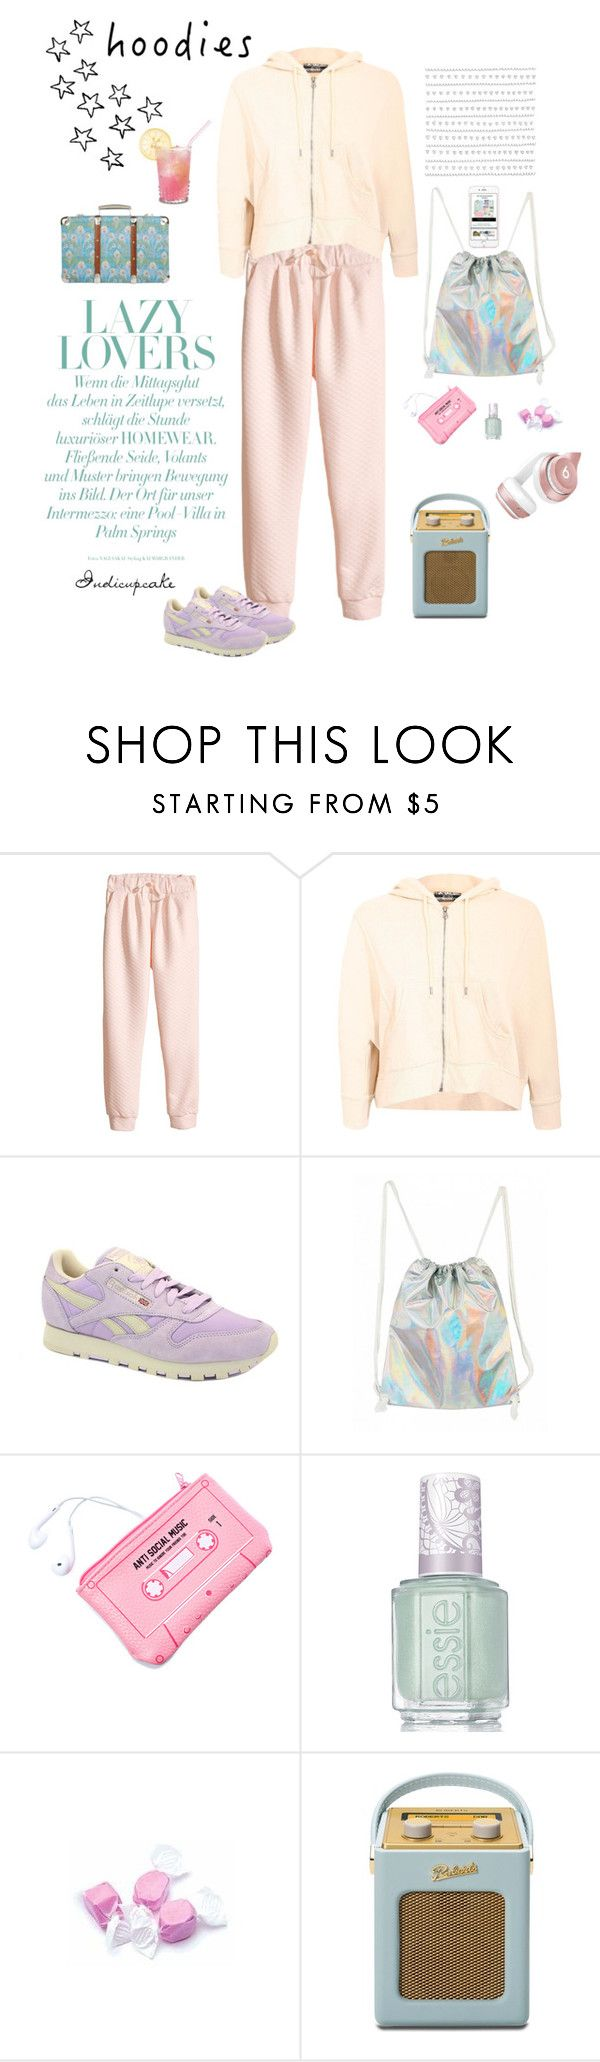 """""""hoodies"""" by indicupcake ❤ liked on Polyvore featuring H&M, Pilot, Reebok, Lazy Oaf, Essie, Salt Water Sandals, Roberts, Liberty and Beats by Dr. Dre"""